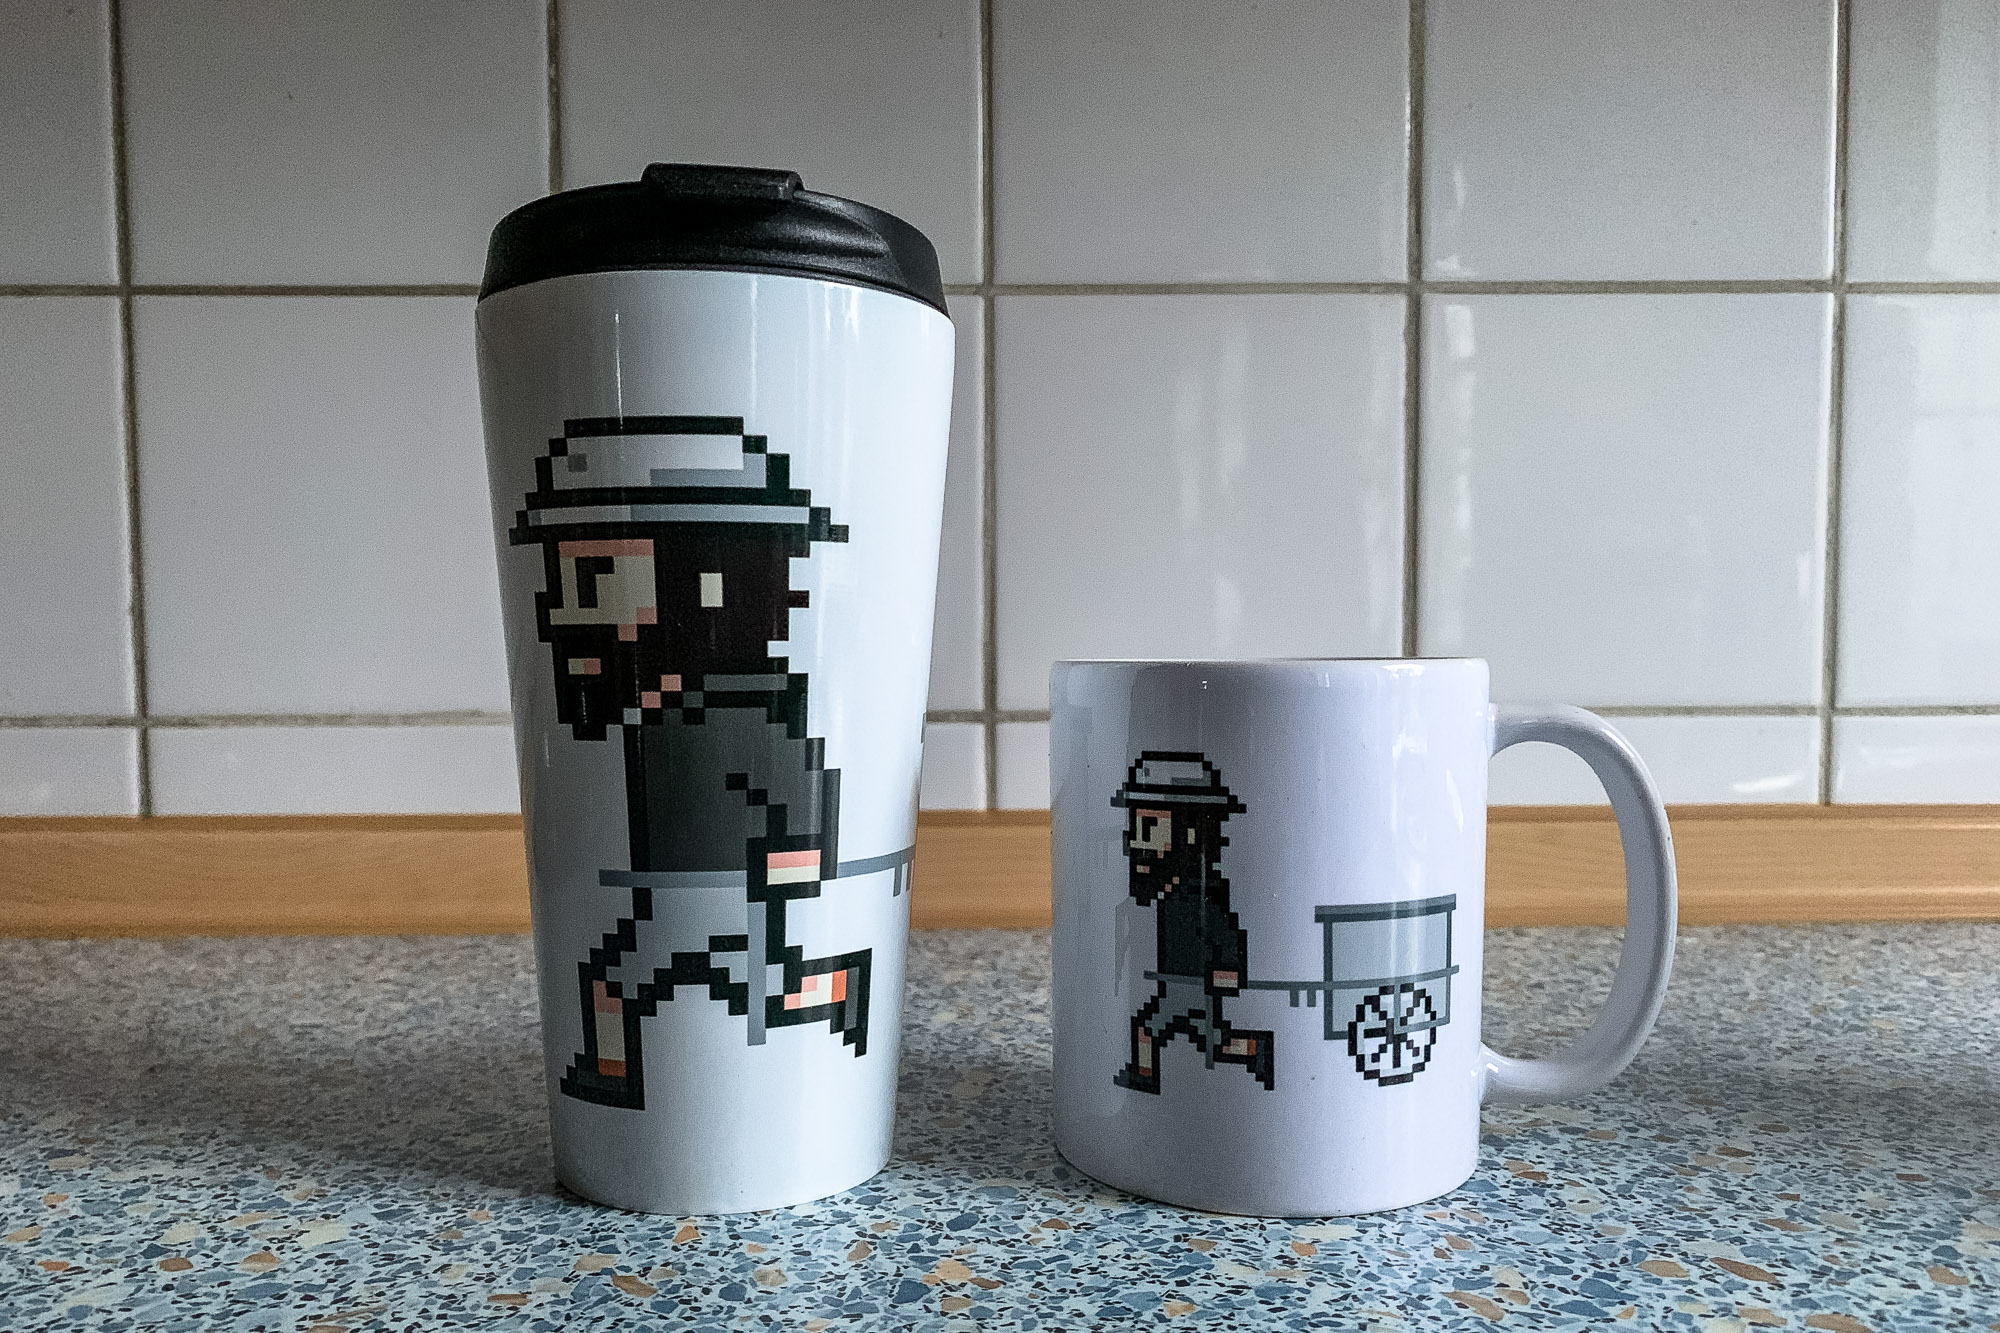 The Longest Way Pixel mugs